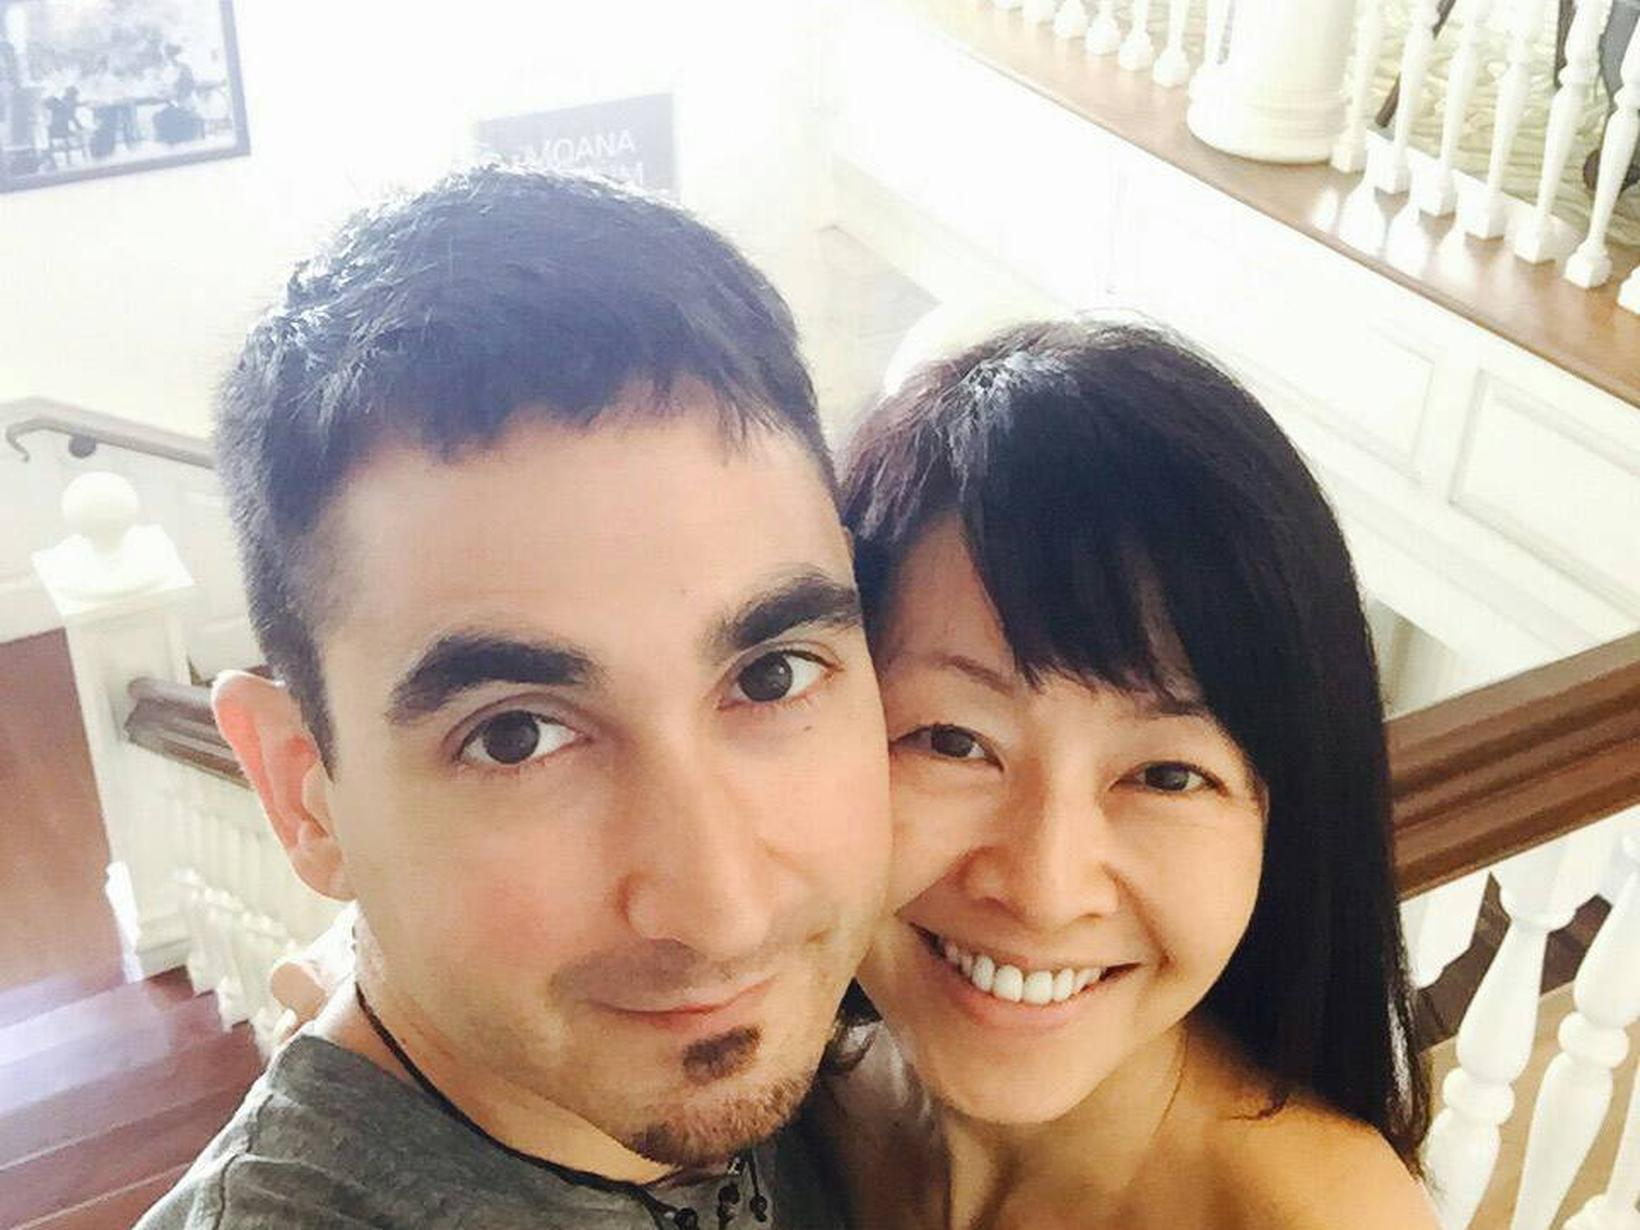 Arthur & Noriko from Los Angeles, California, United States